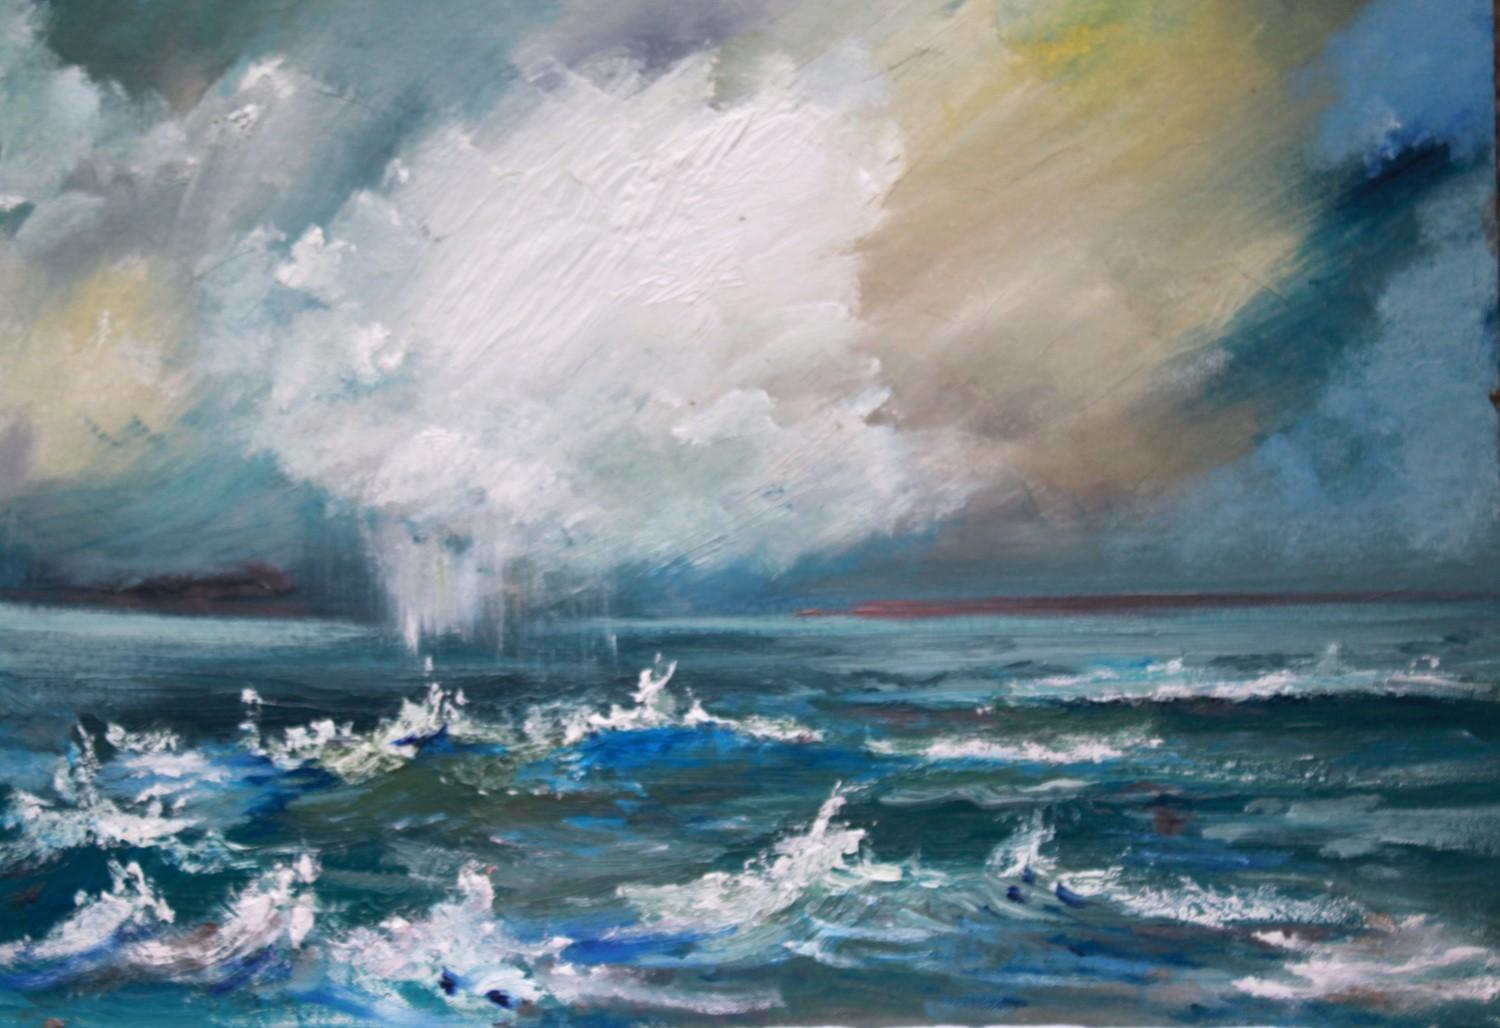 'Blustery Waves' by artist Rosanne Barr